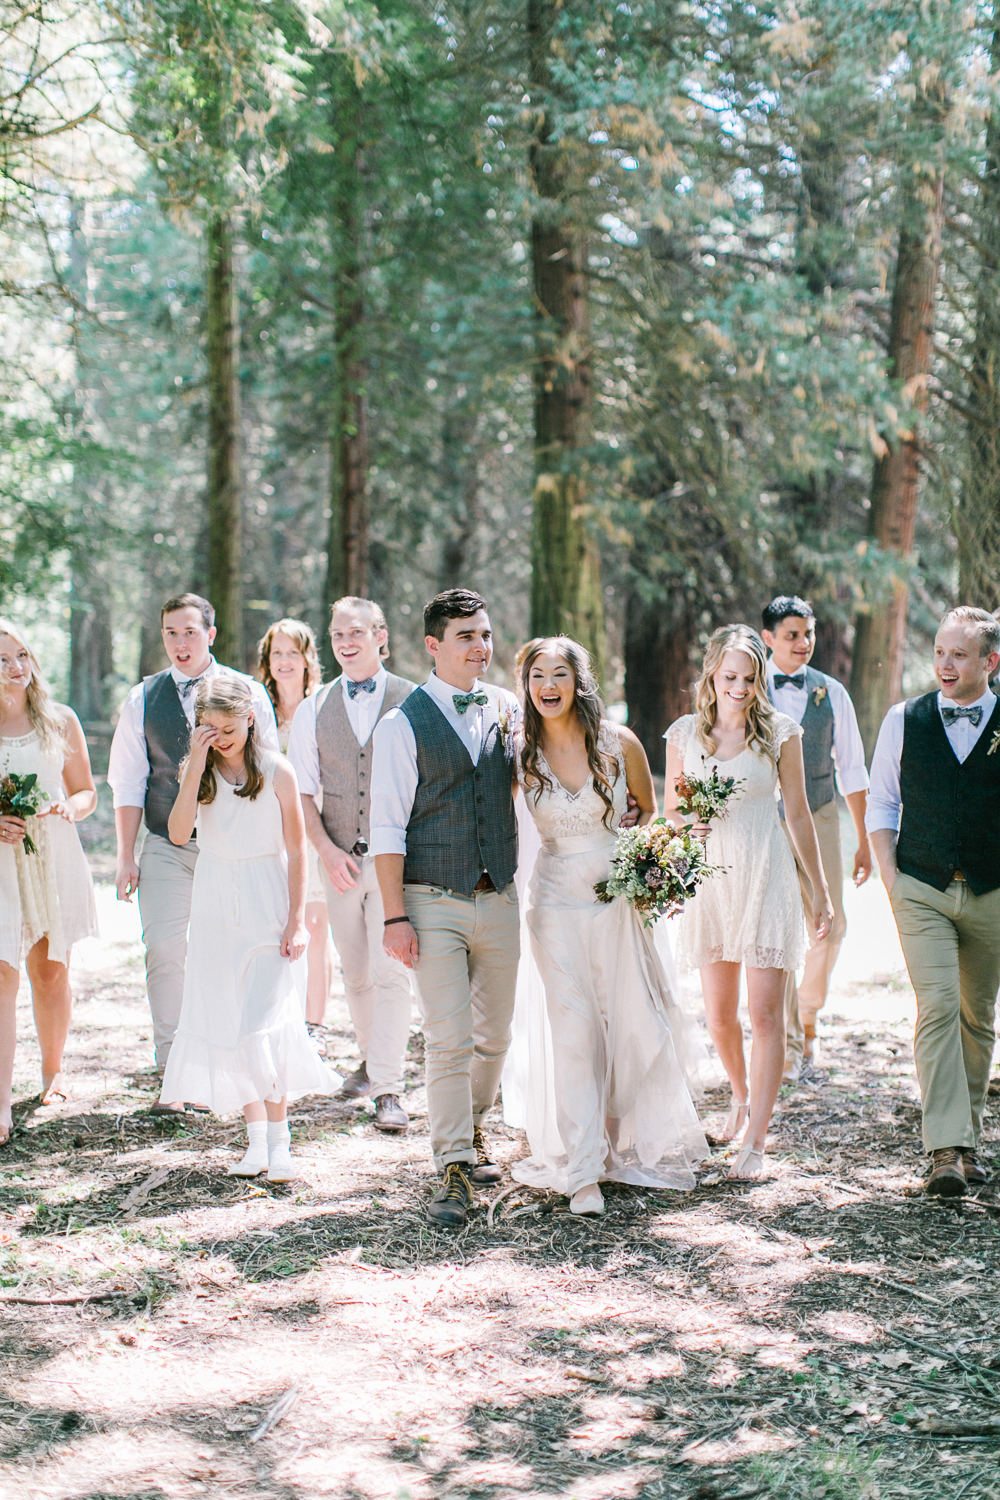 Wedding Party - Rustic Oregon Summer Wedding from Maria Lamb Photography - marialamb.co